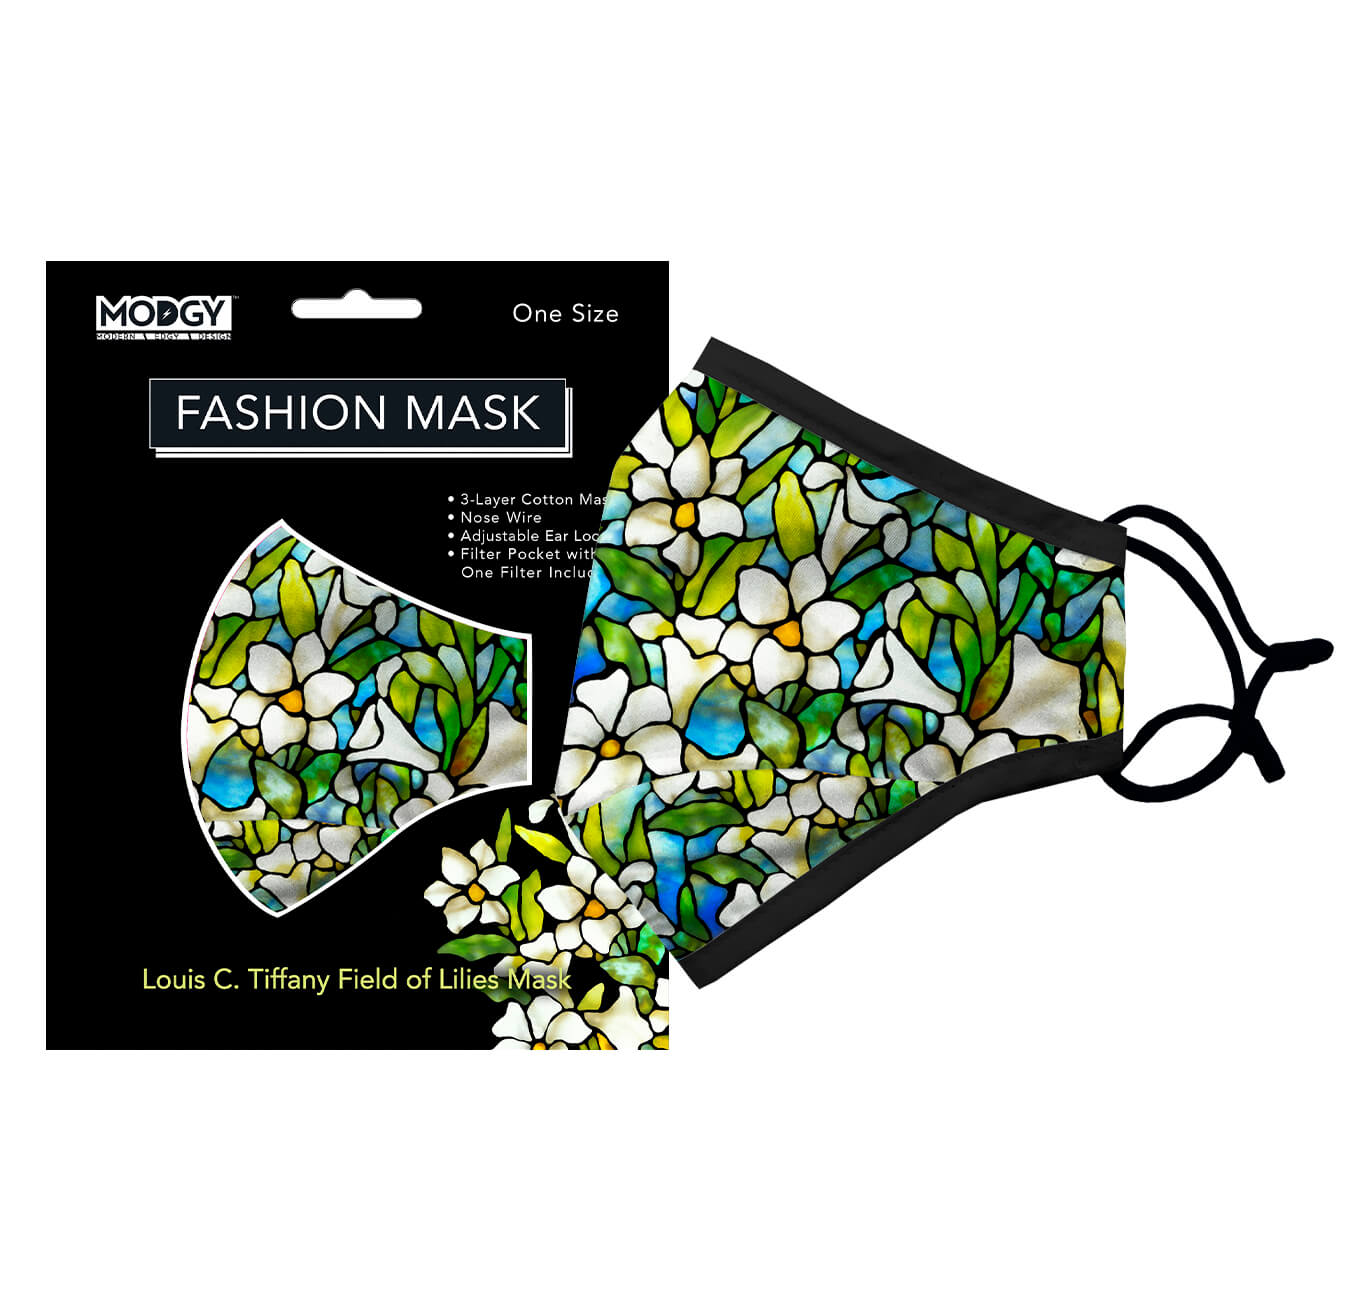 Louis C. Tiffany Field of Lilies Fashion Mask